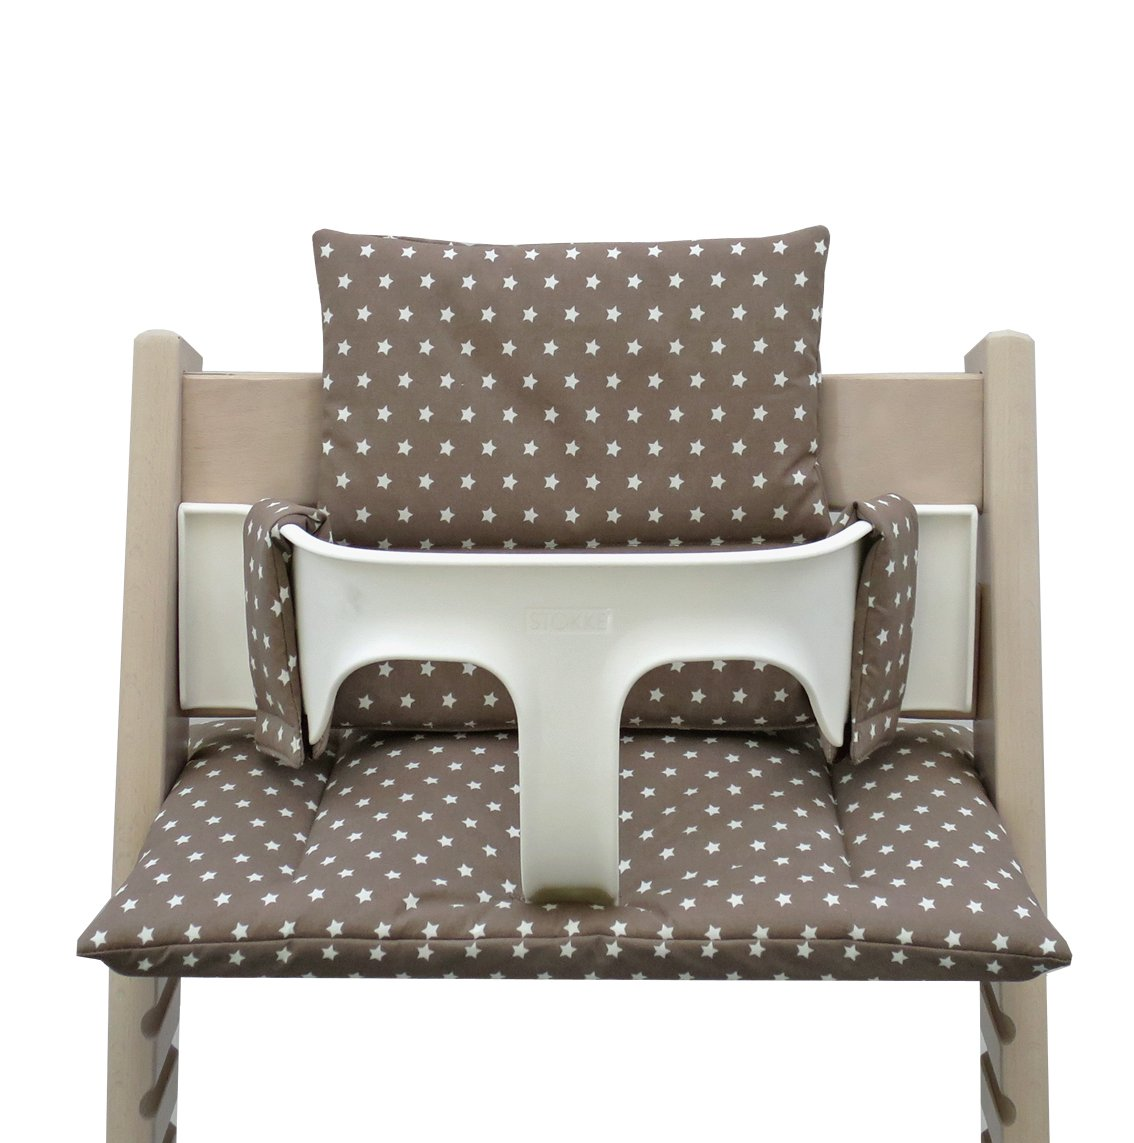 Blausberg Baby - Coated Cushion Set for Tripp Trapp High Chair of Stokke - Taupe Stars 050474